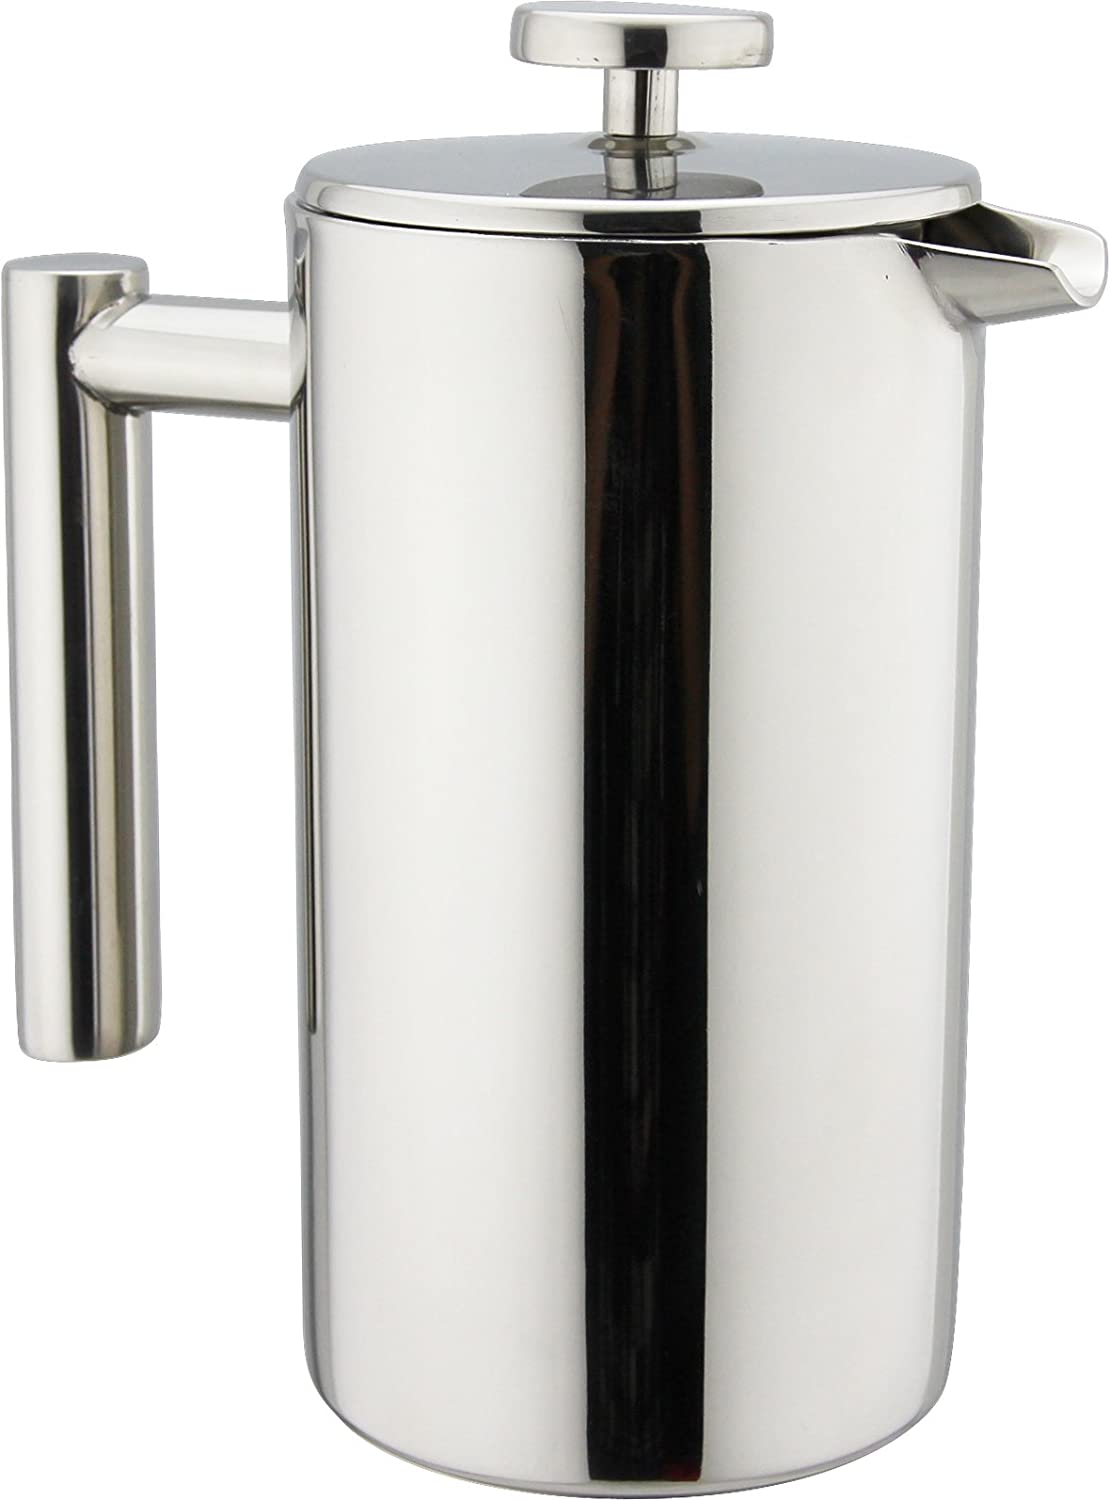 French Press Coffee Maker Meijer : Kuissential 8-Cup Stainless Steel French Press Amazon Lightning Deal Picks Coupon Karma